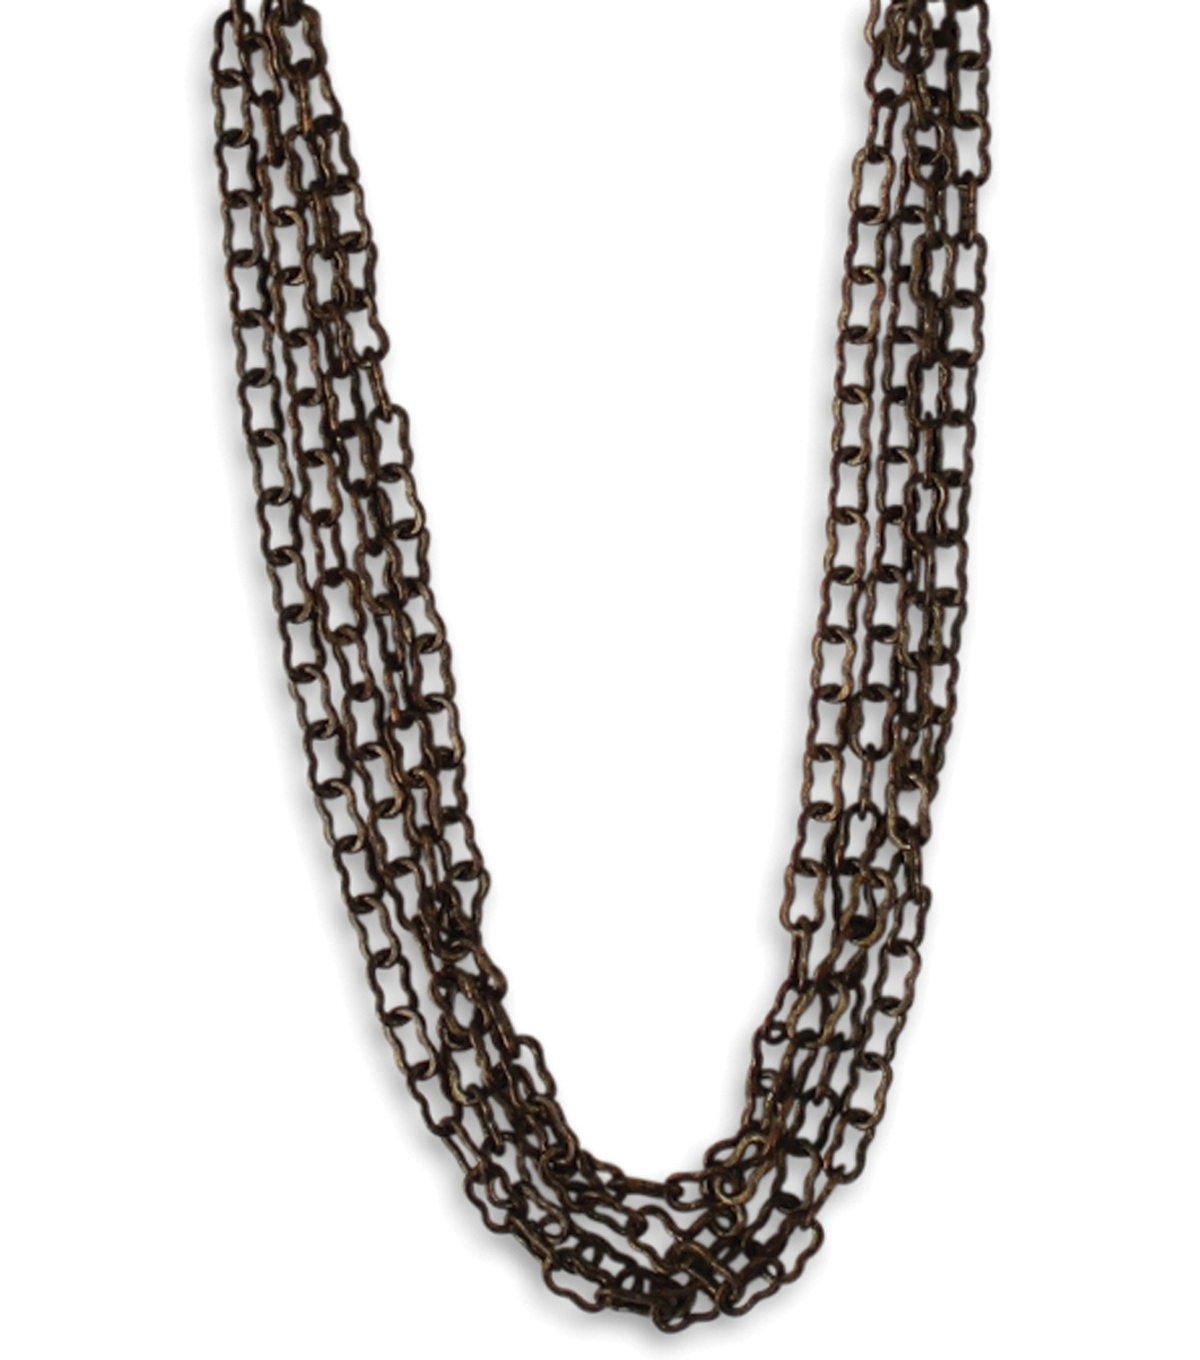 Vintaj Metal Chain 24\u0022-Fine Ornate 2x3.5mm